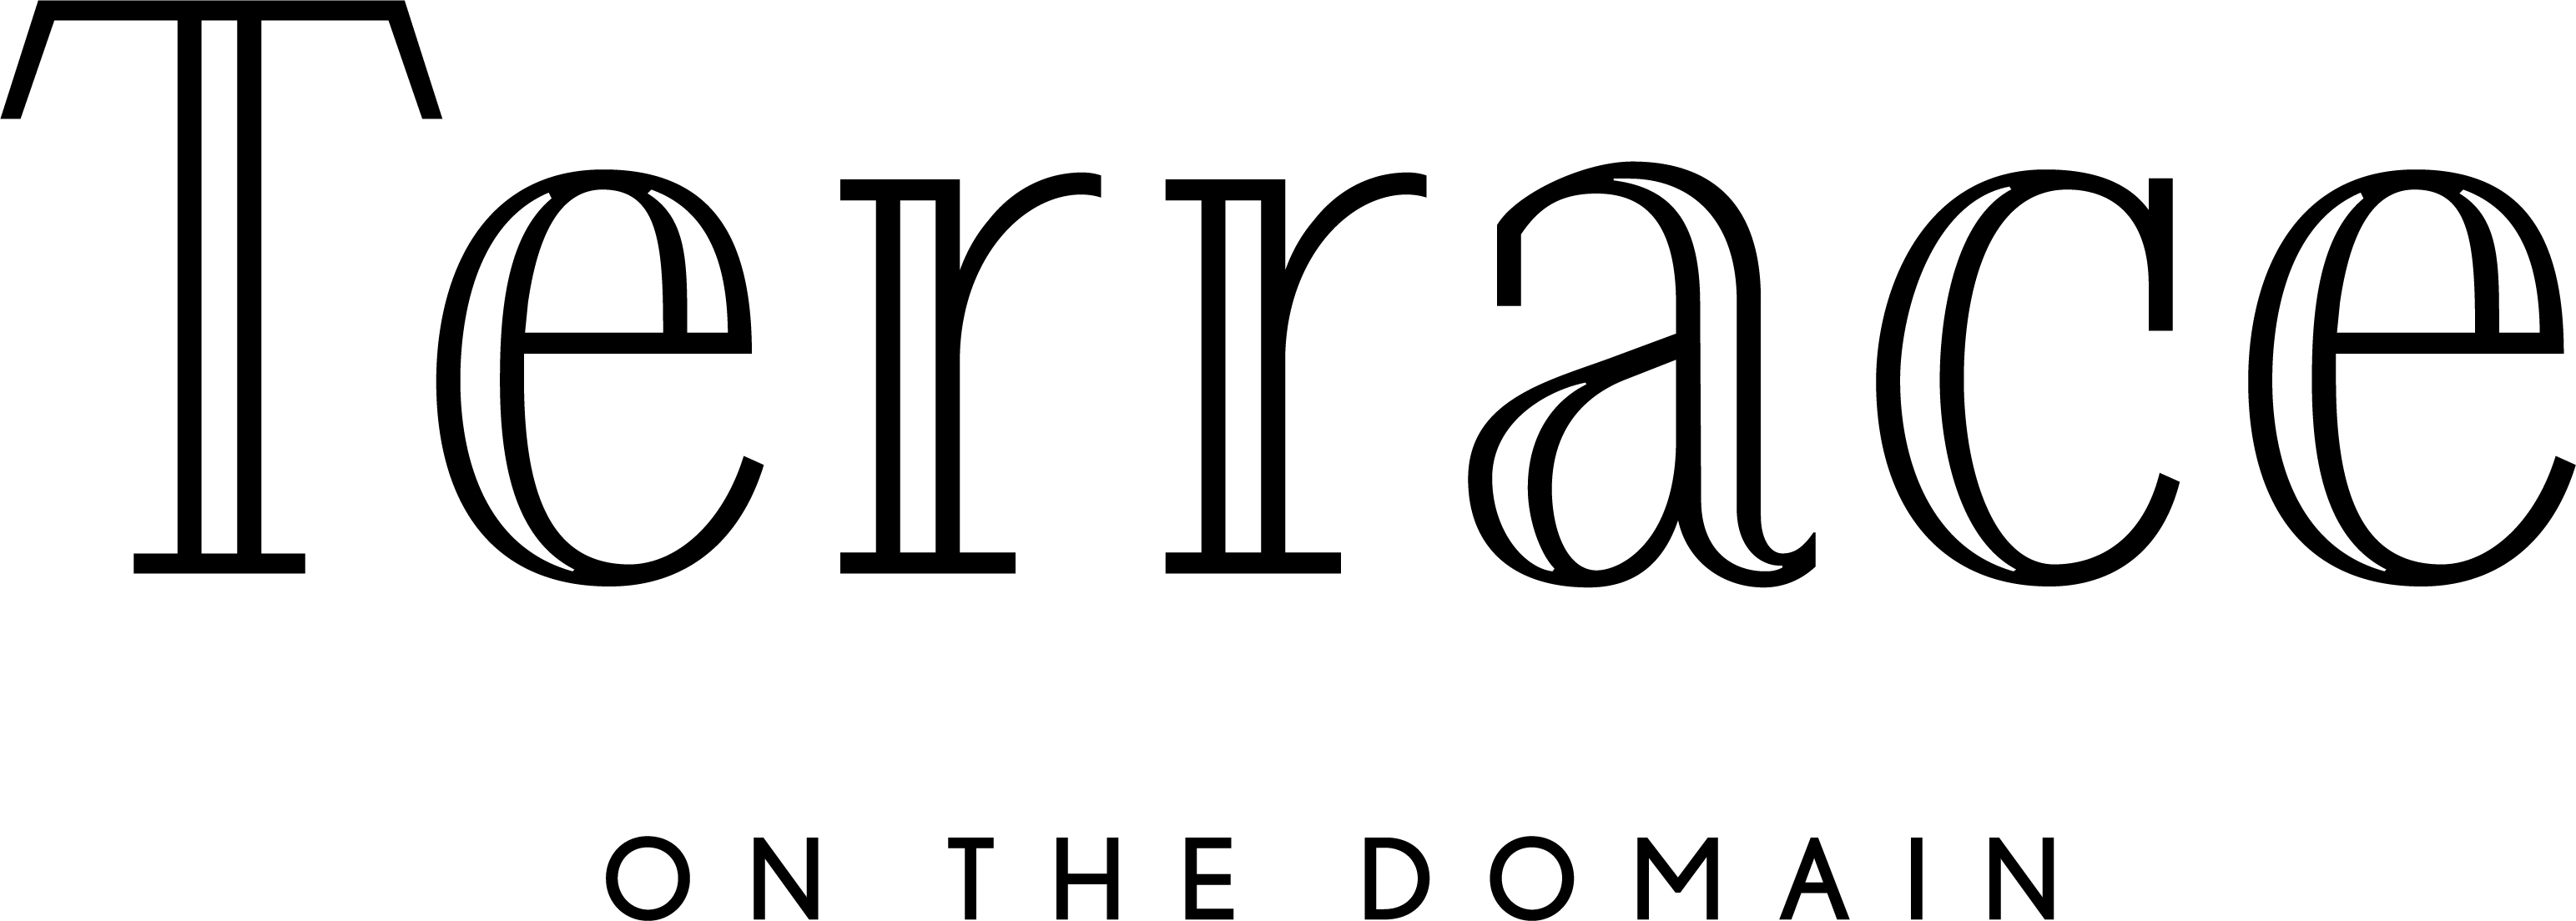 Terrace on the Domain <br/>Best Outdoor Dining